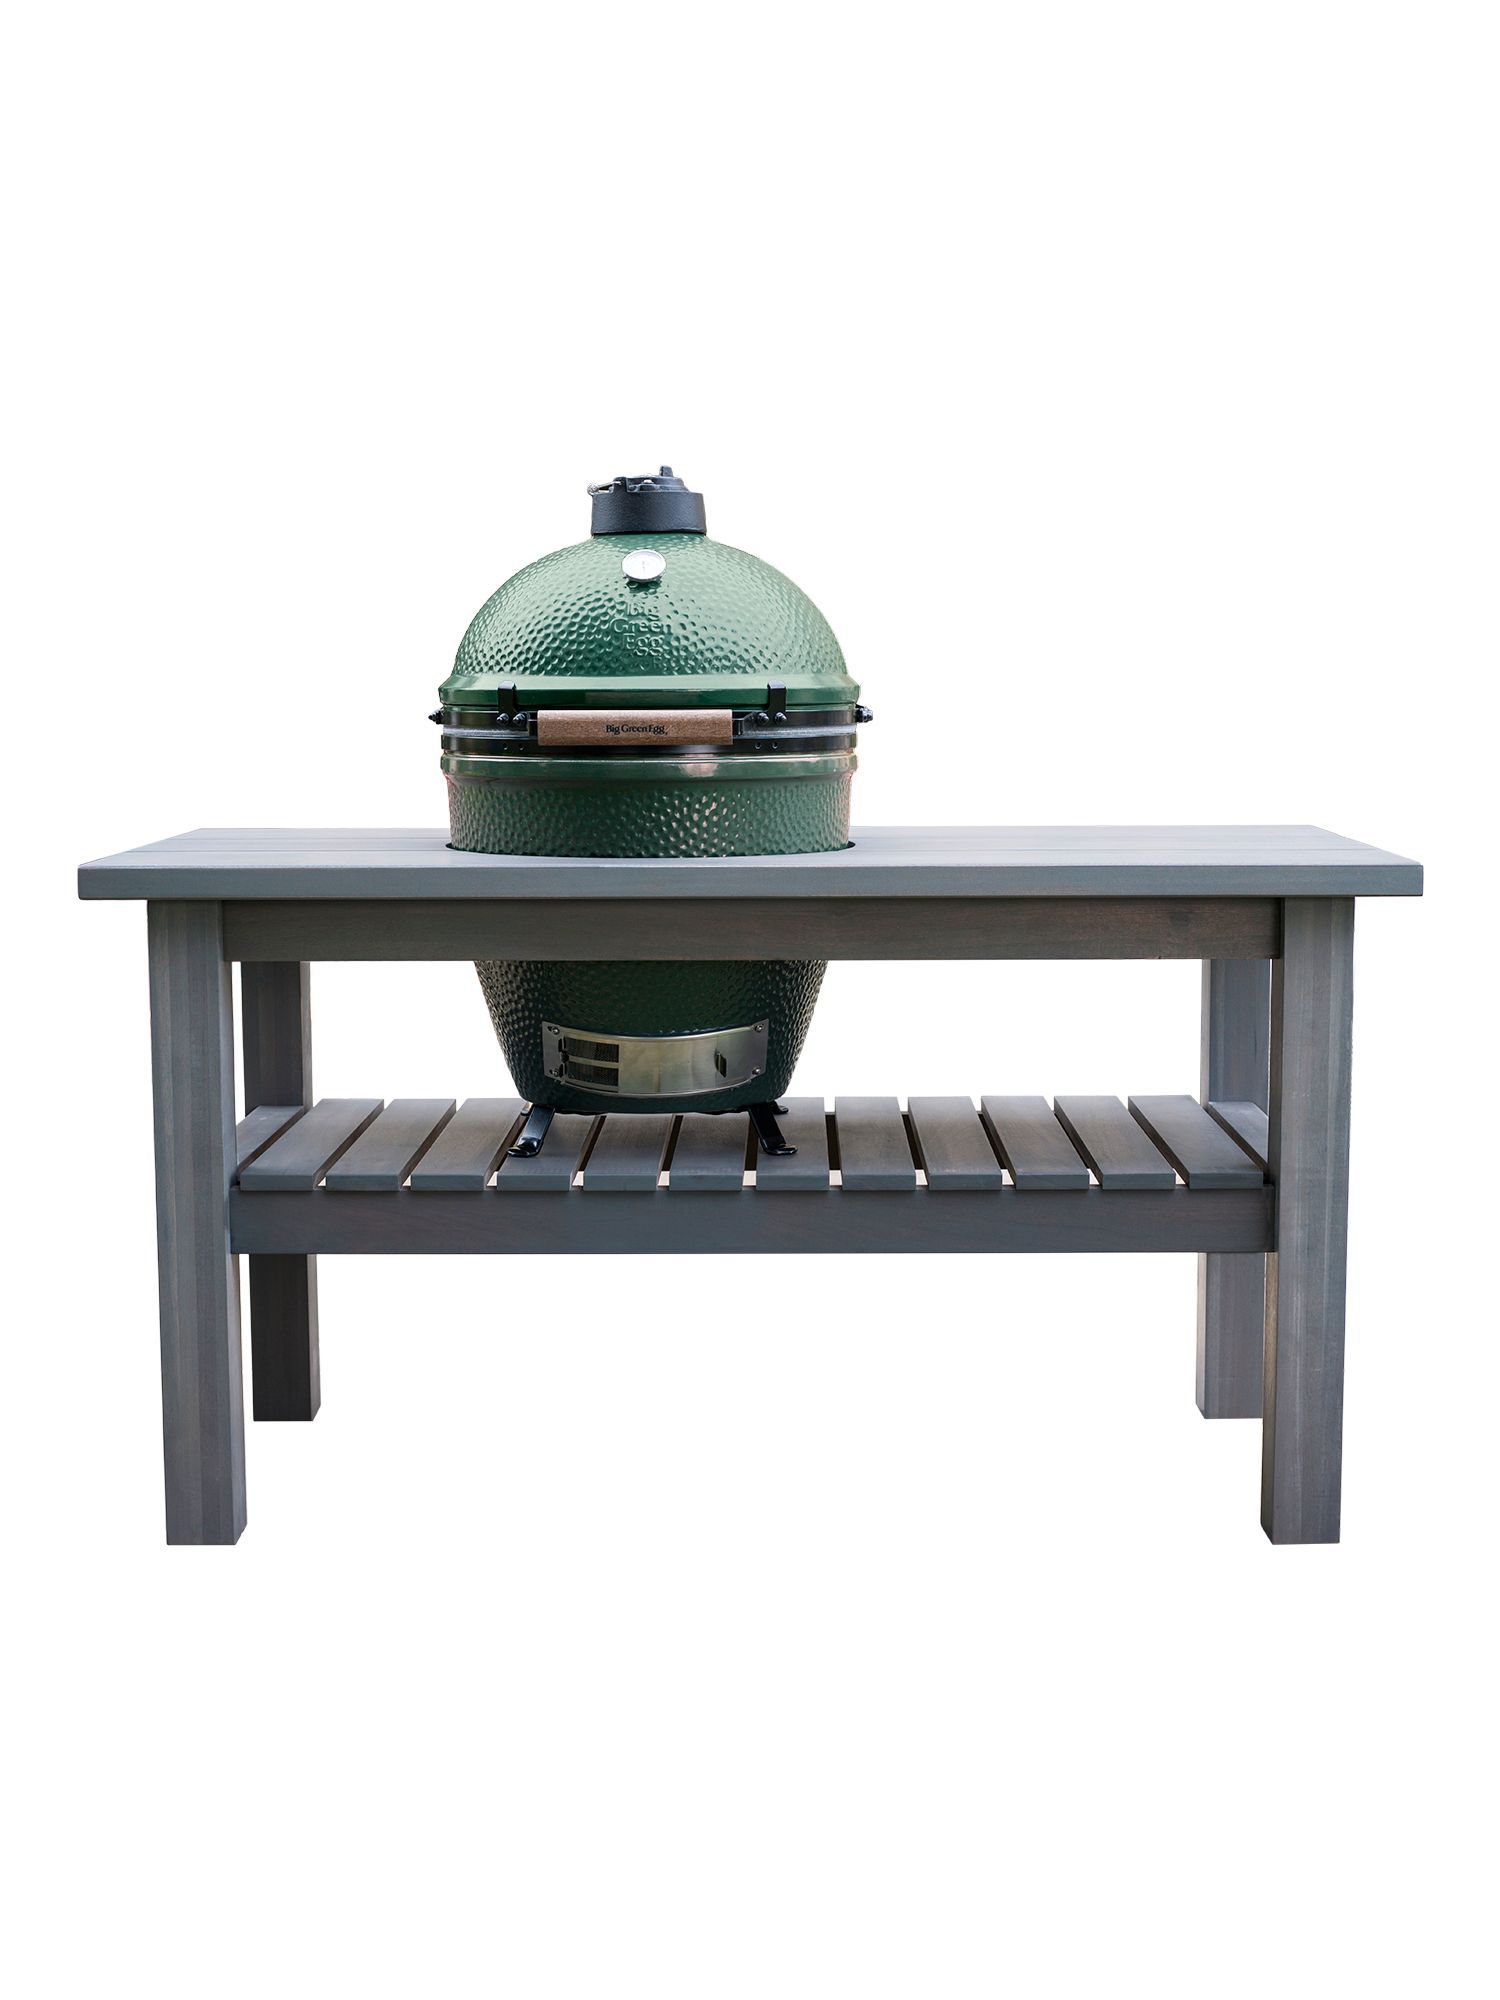 Image of Big Green Egg Large barbecue in slate grey table